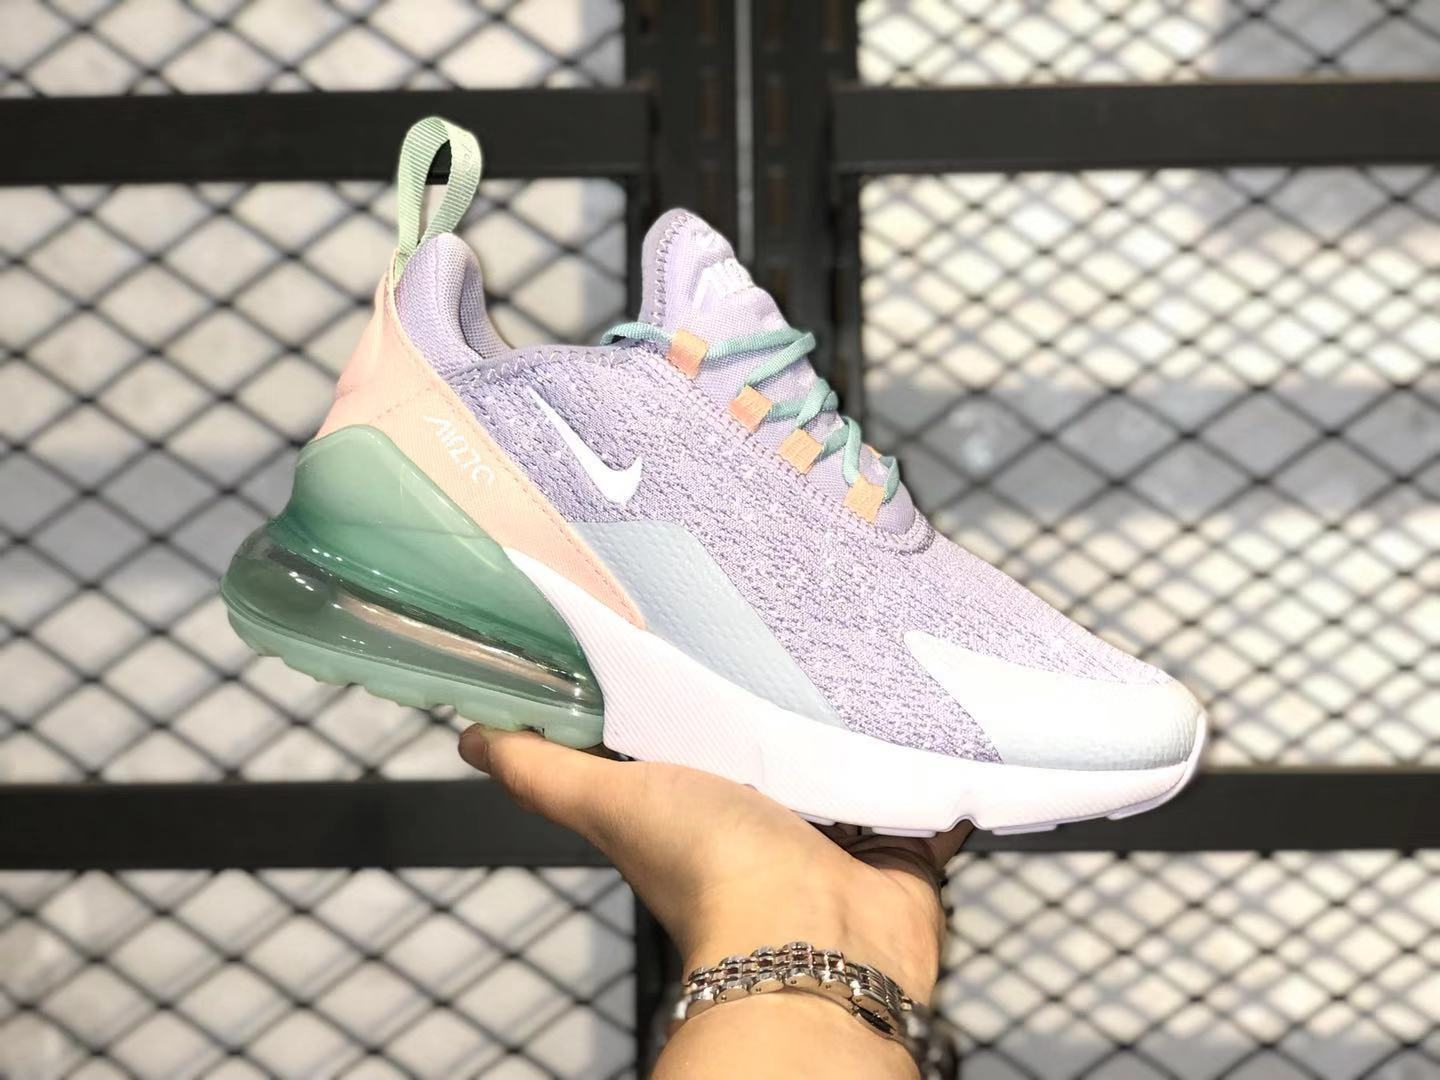 Hot Sale Nike Wmns Air Max 270 Oxygen Purple Tint Running Shoes CI1963-514